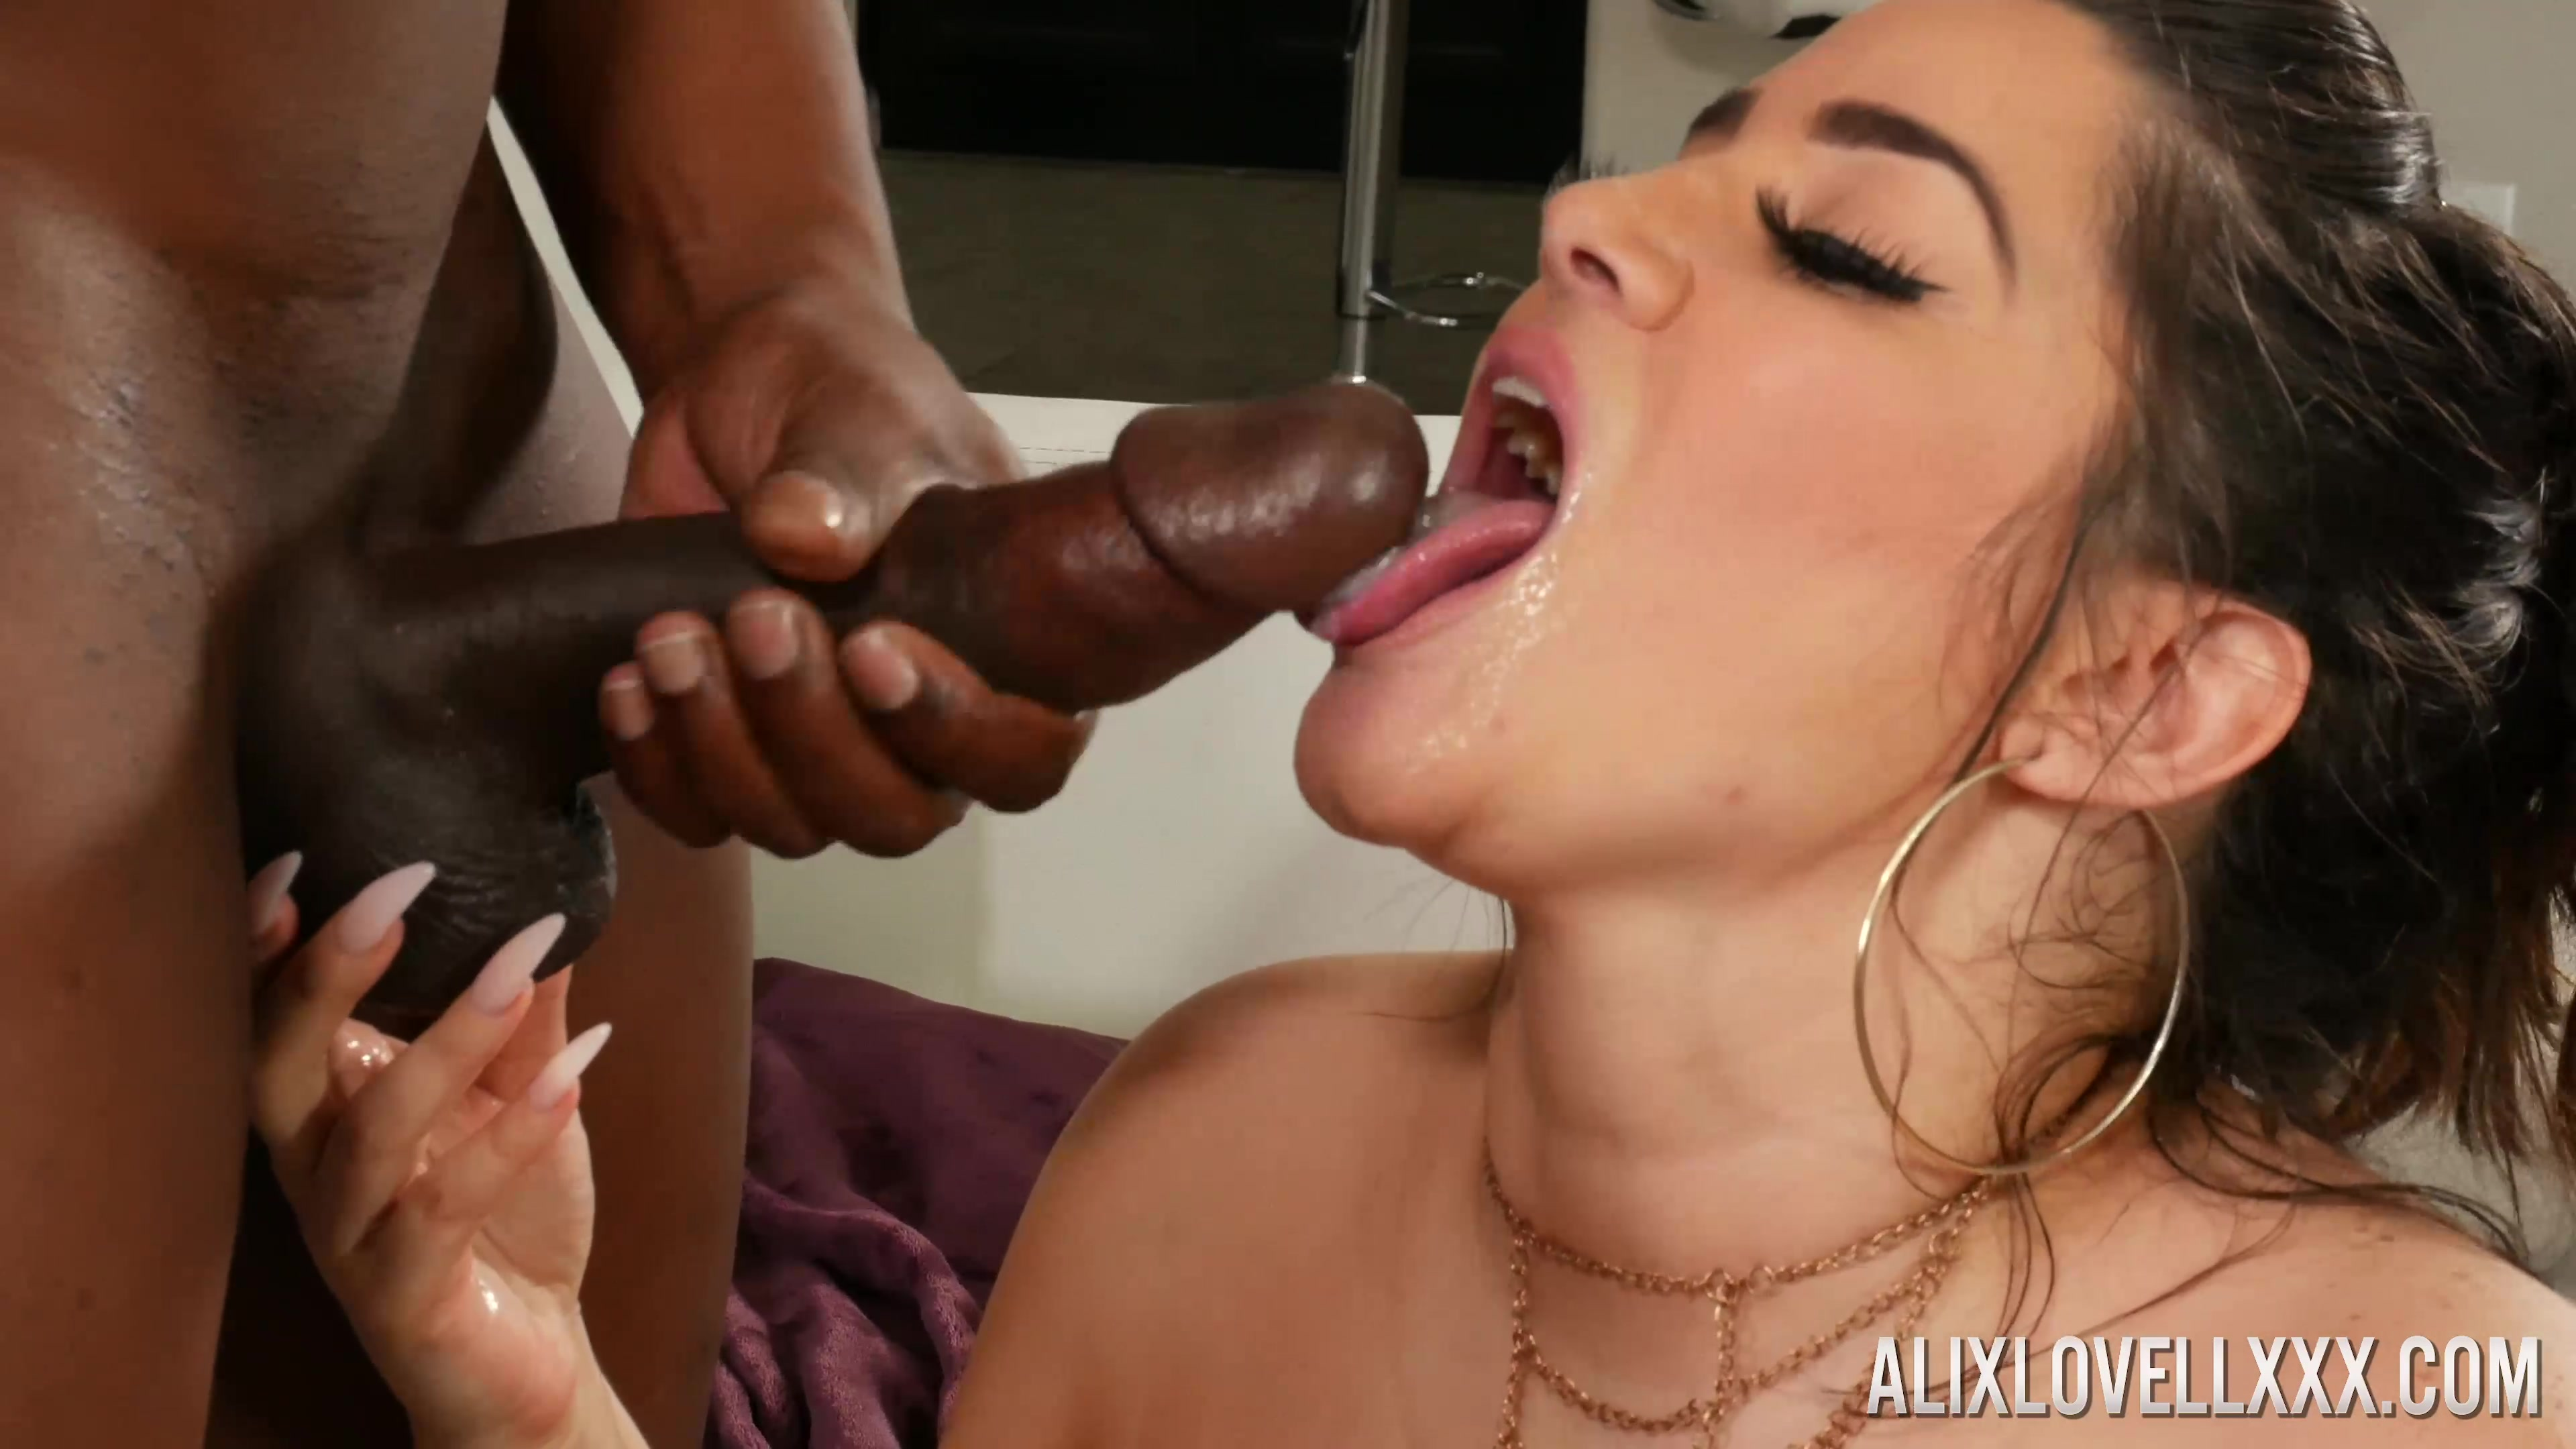 XXX Video Sex with the neighbours wife